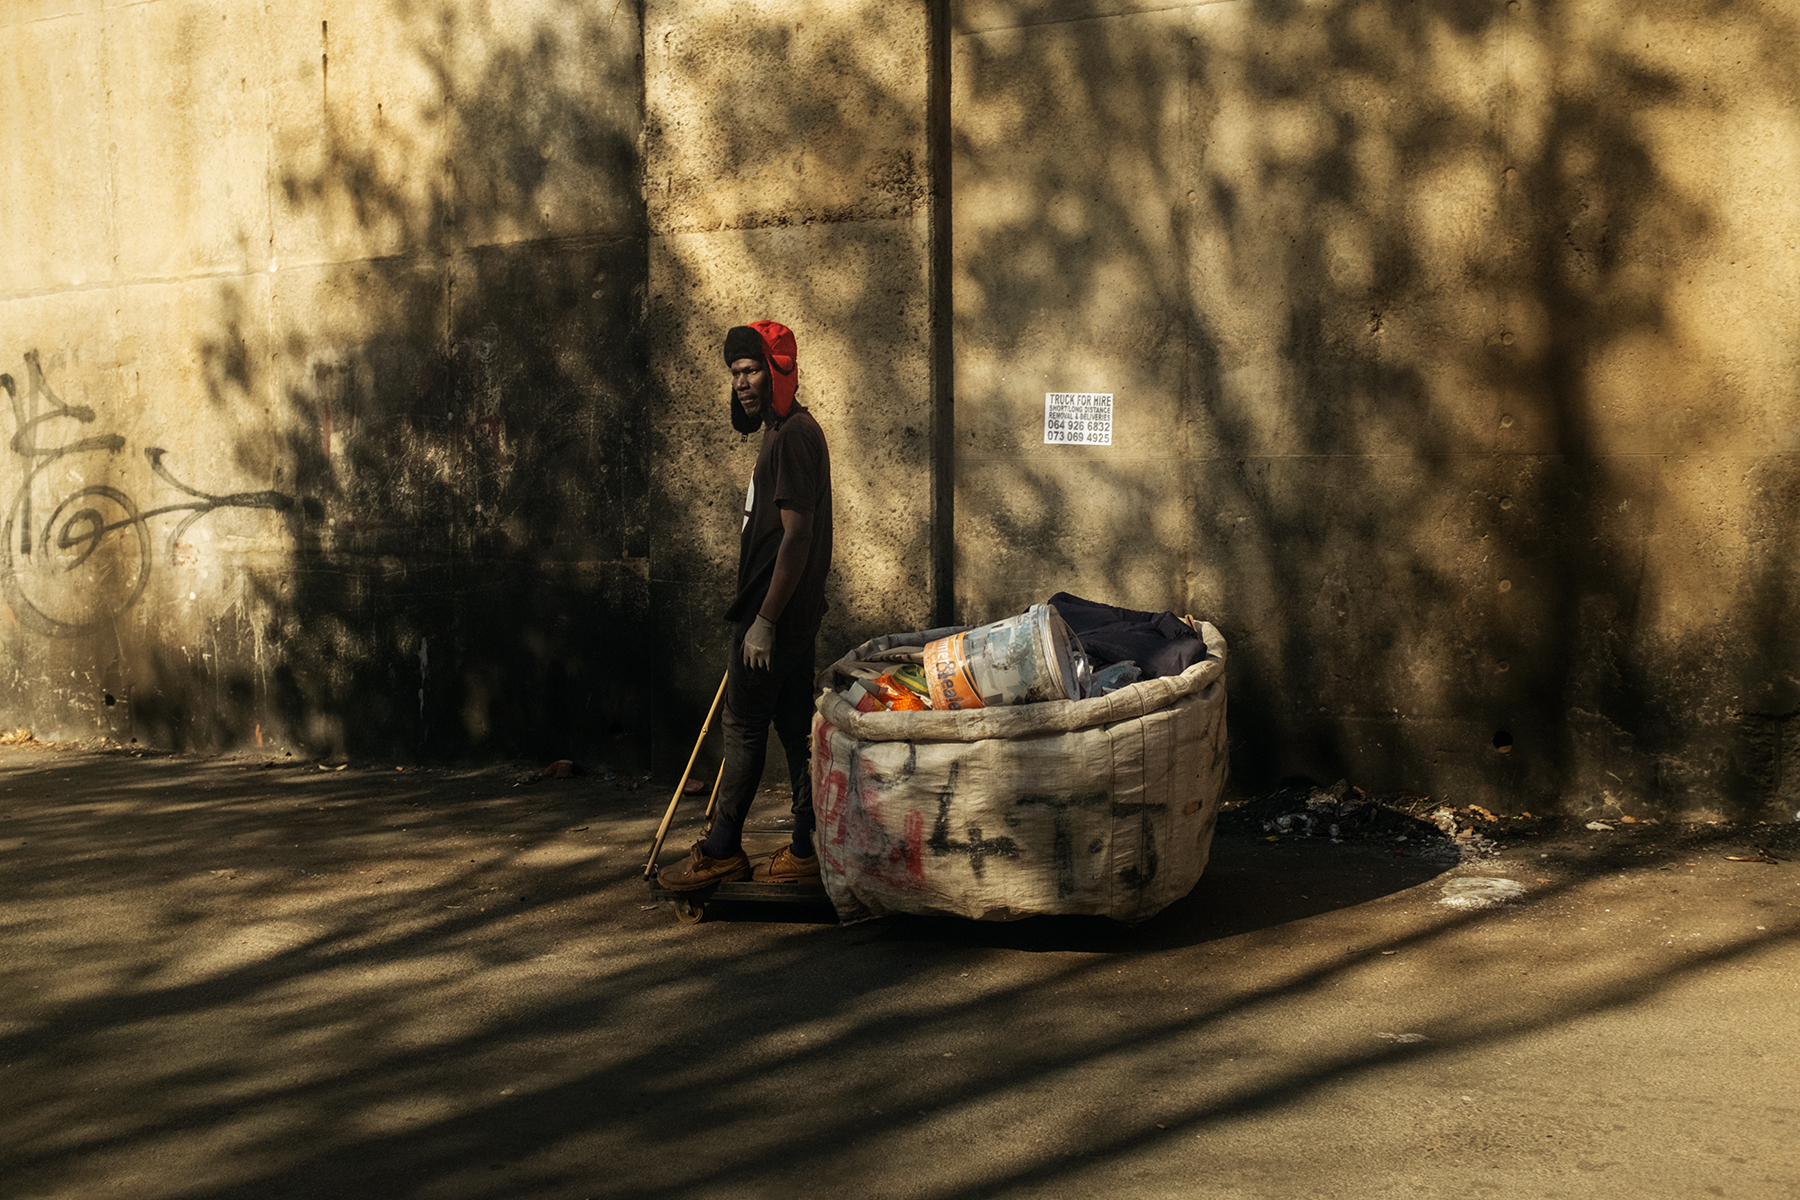 Scelo Sithole, 38, rides his trolley filled with waste collected from trash bins in the early morning of June 12, 2019 in Johannebsurg, South Africa.